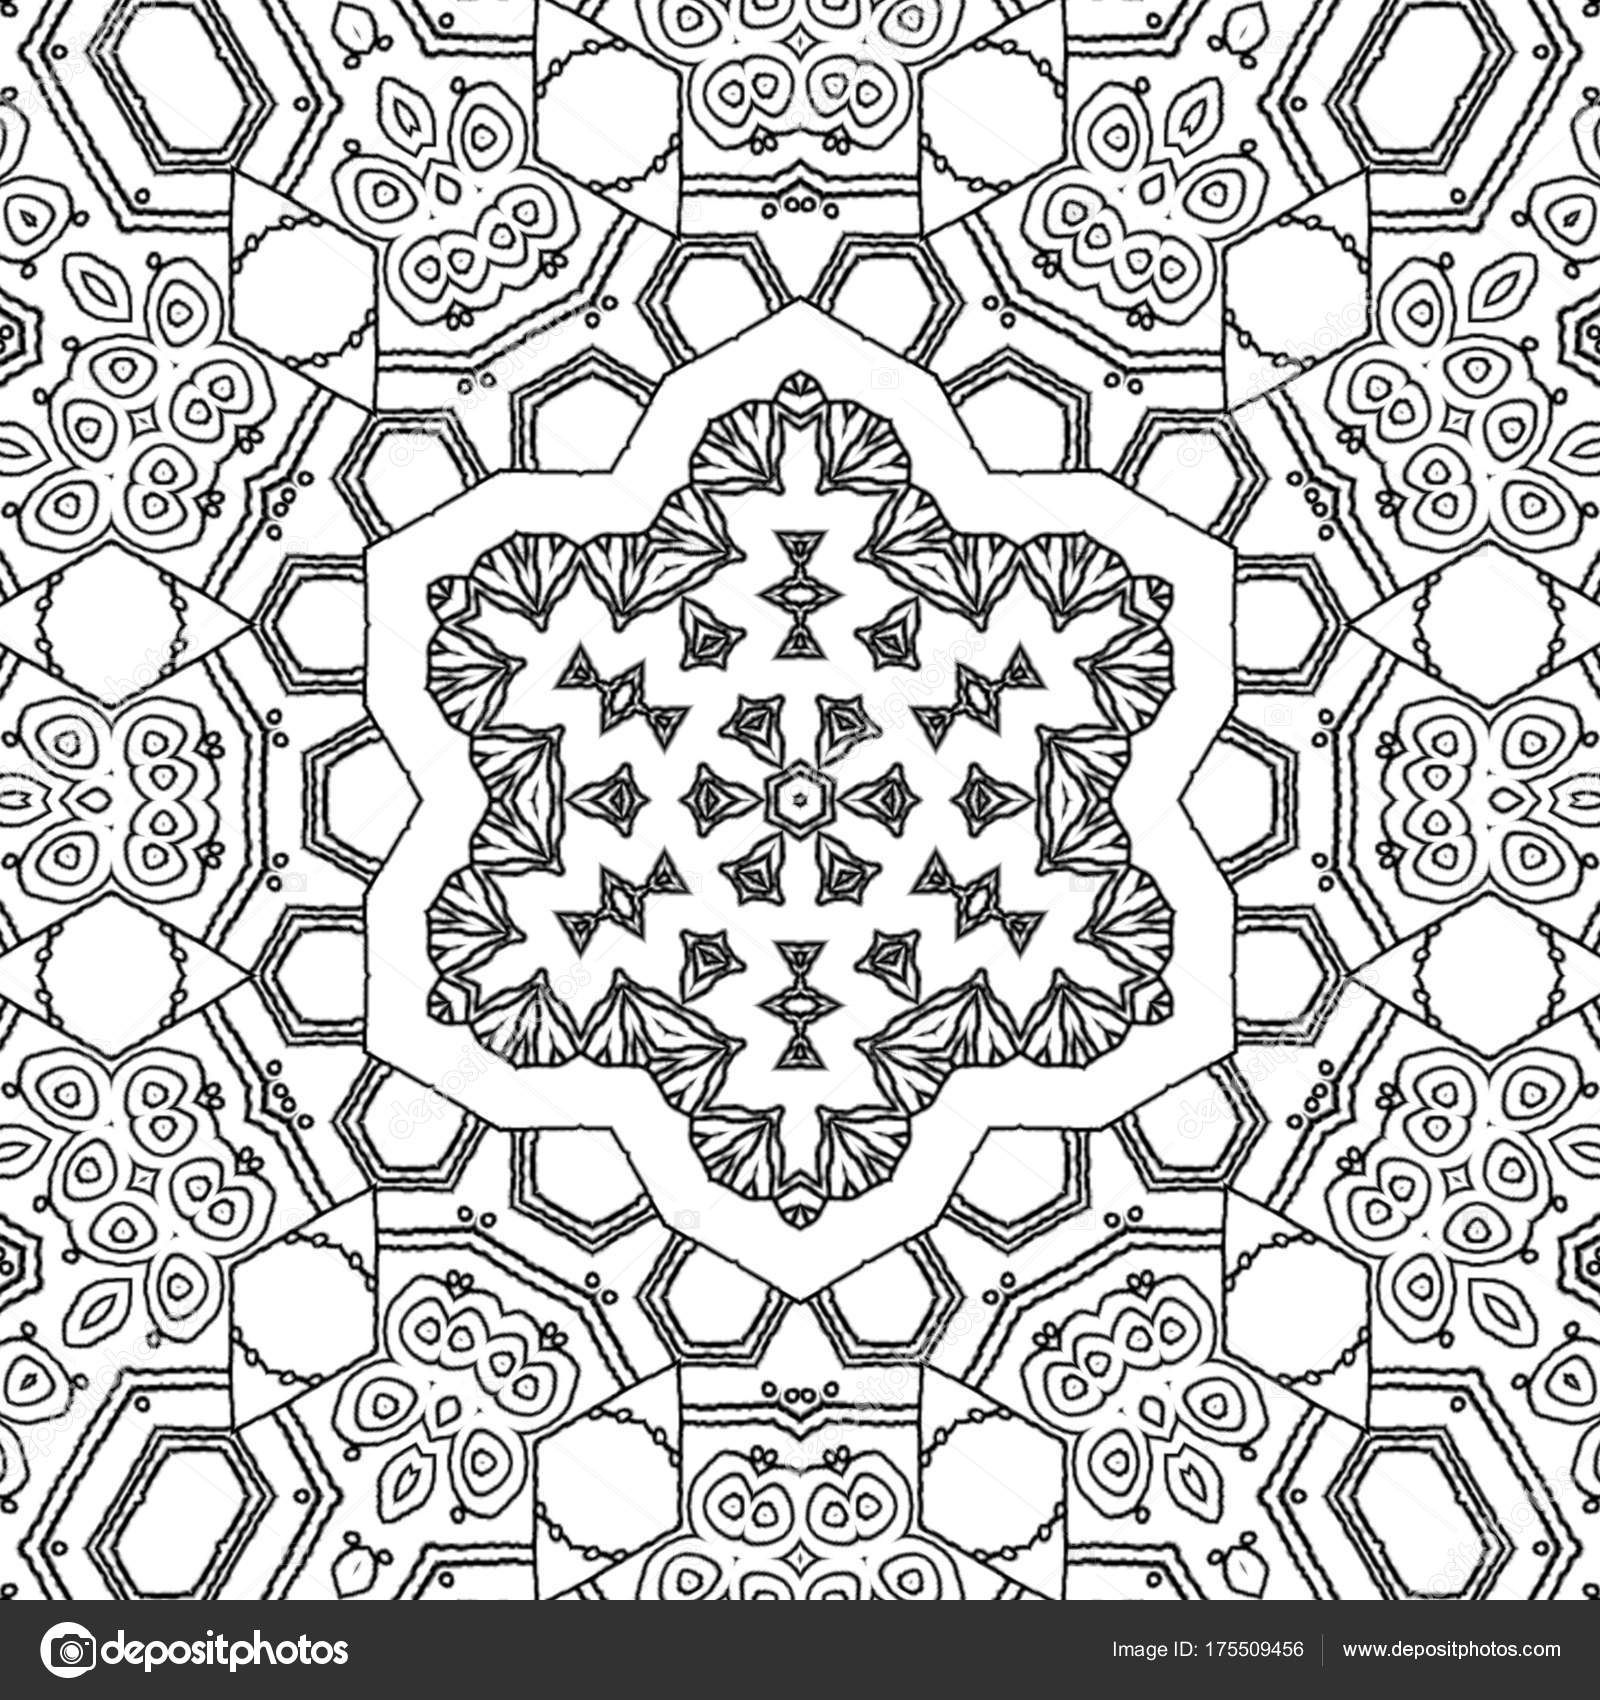 Abstract Coloring Page Drawing Monochrome Mandala Star Ornament